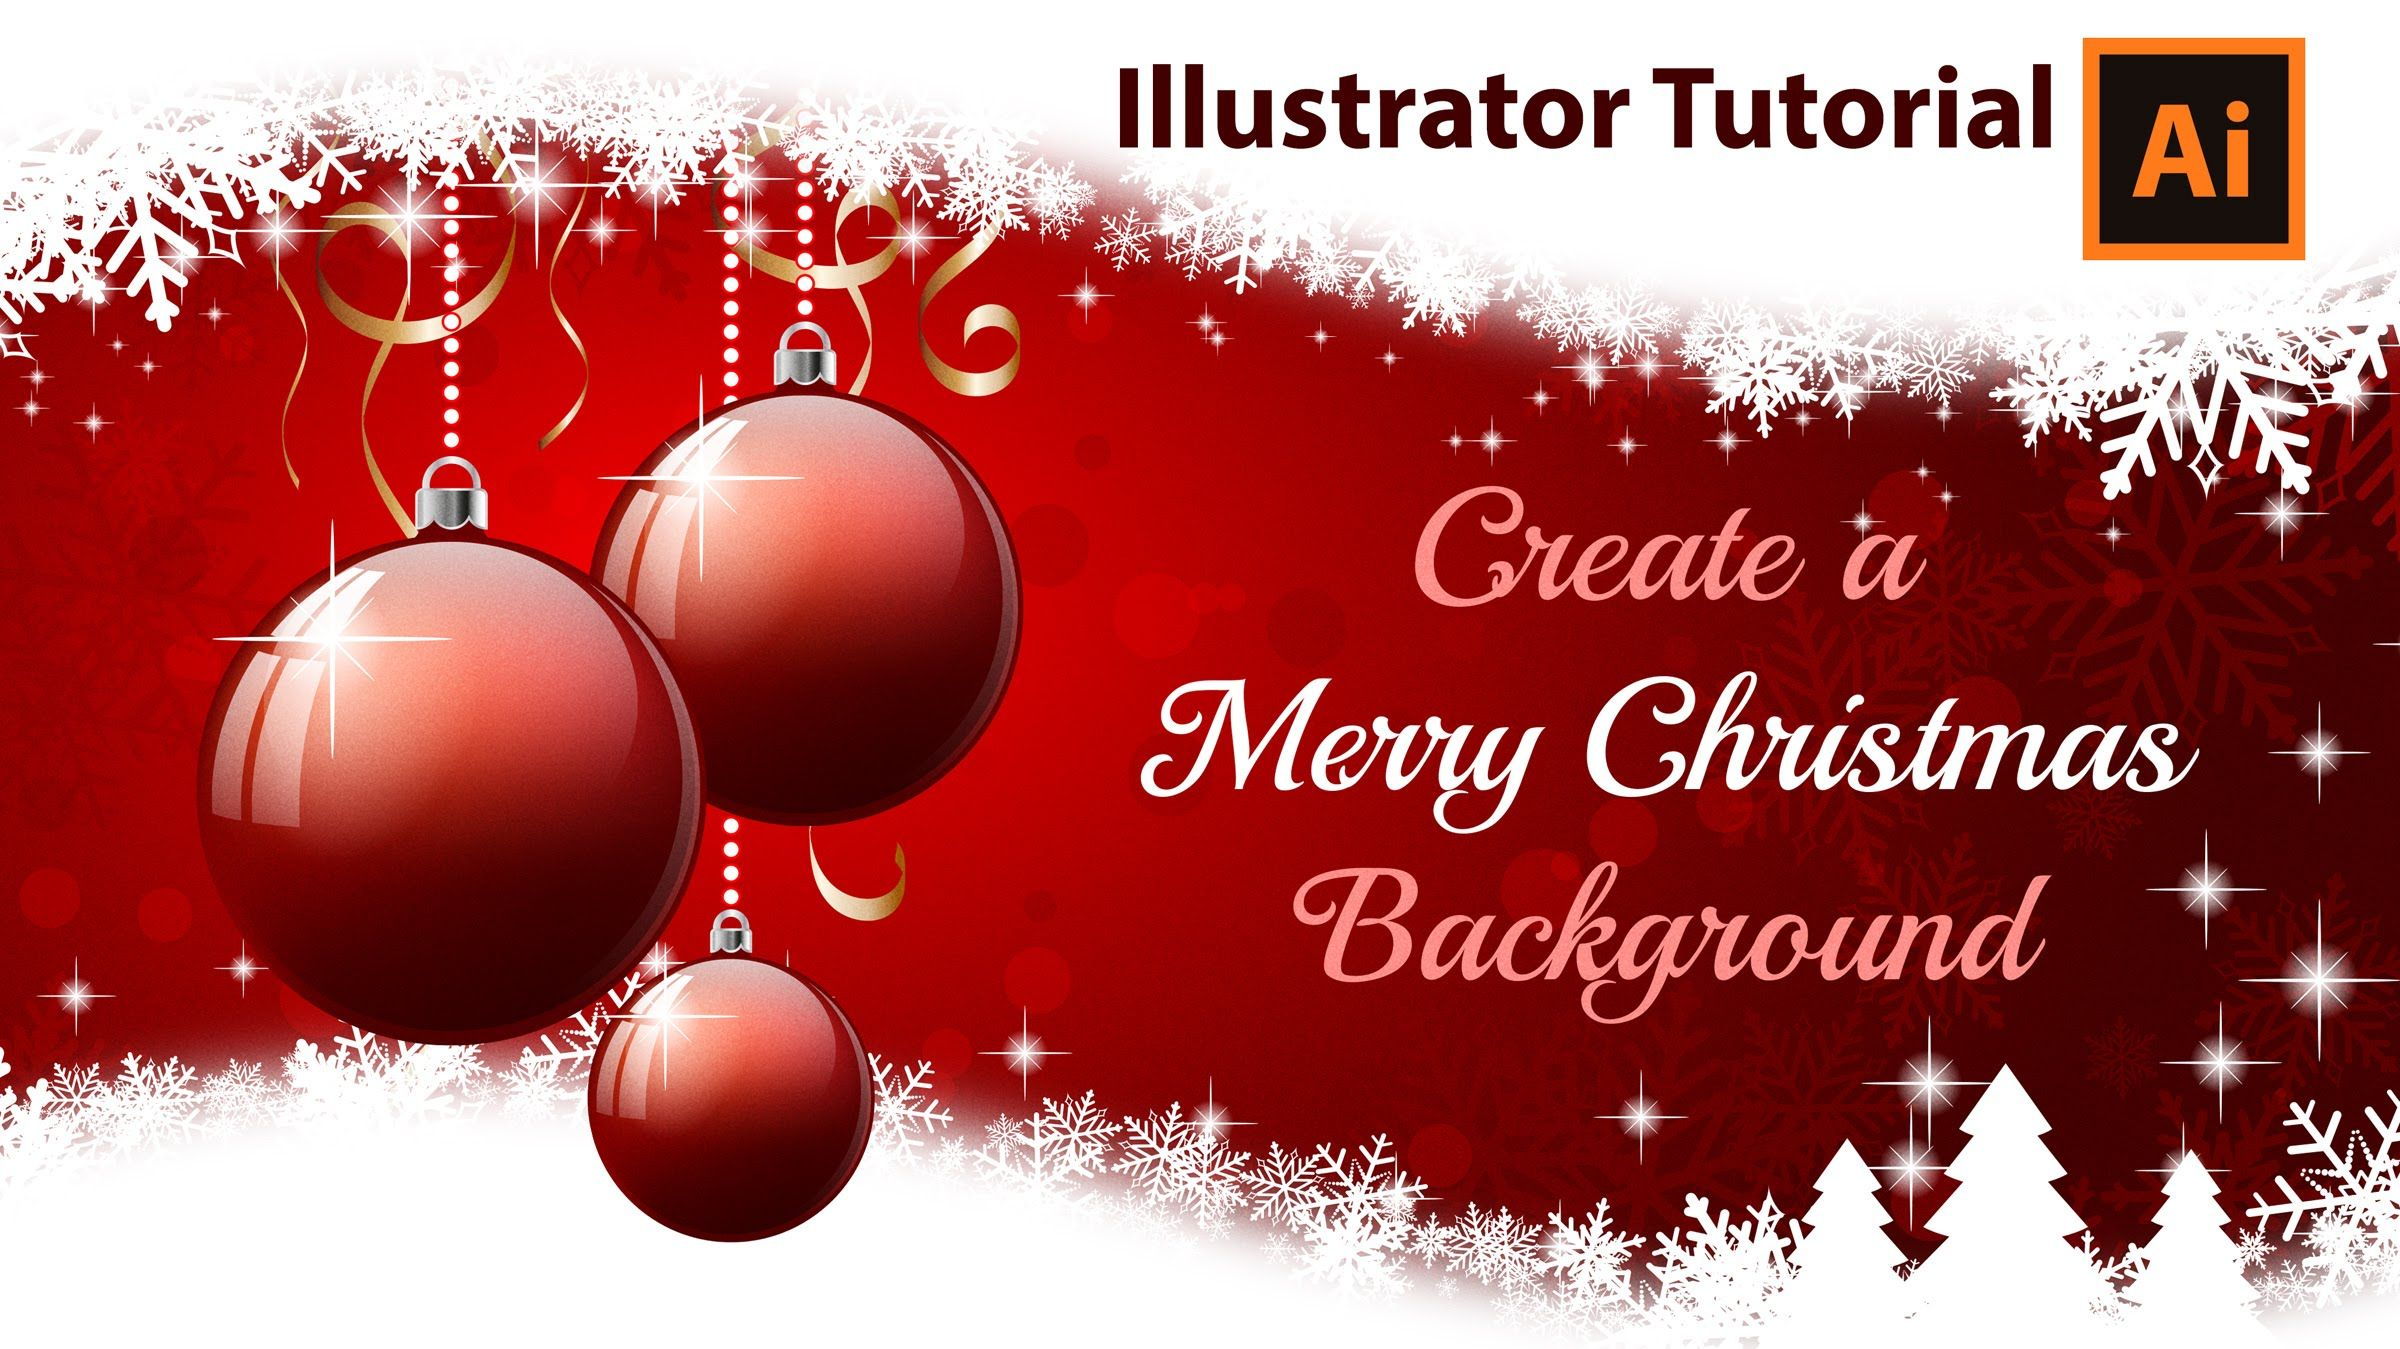 Illustrator Tutorial How To Create A Christmas Card Photoshop Christmas Card Template Create Christmas Cards Illustrator Tutorials